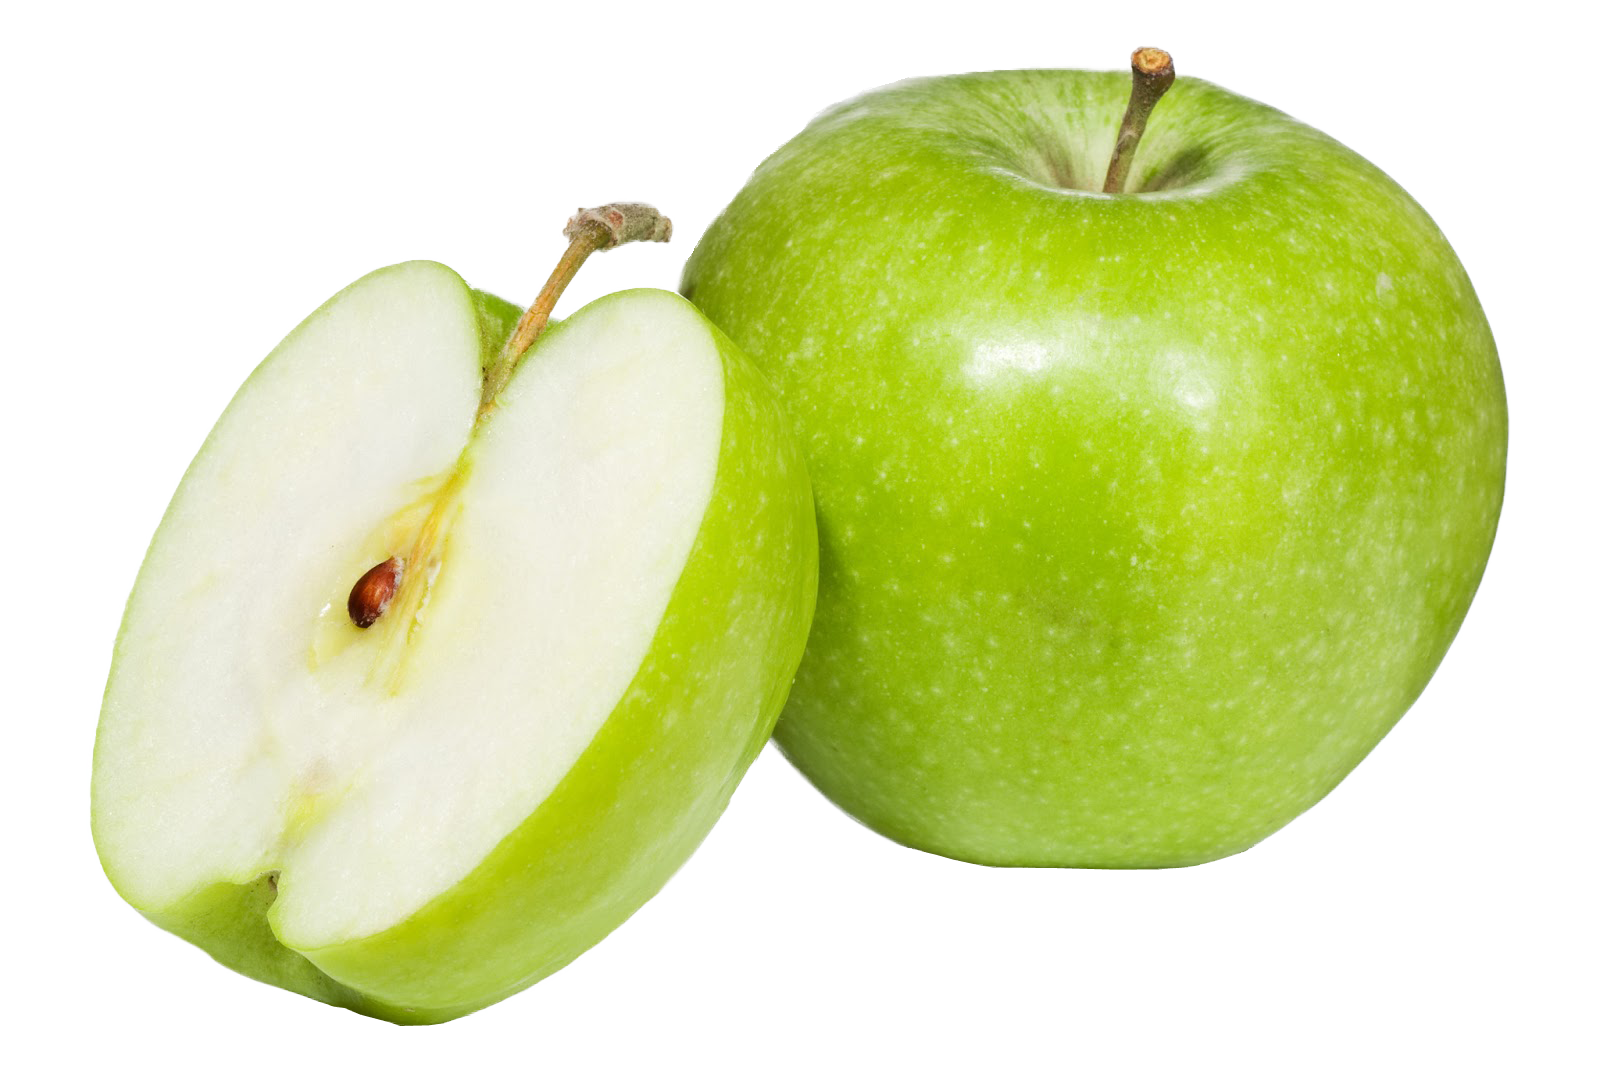 Green apples png. Apple images free download